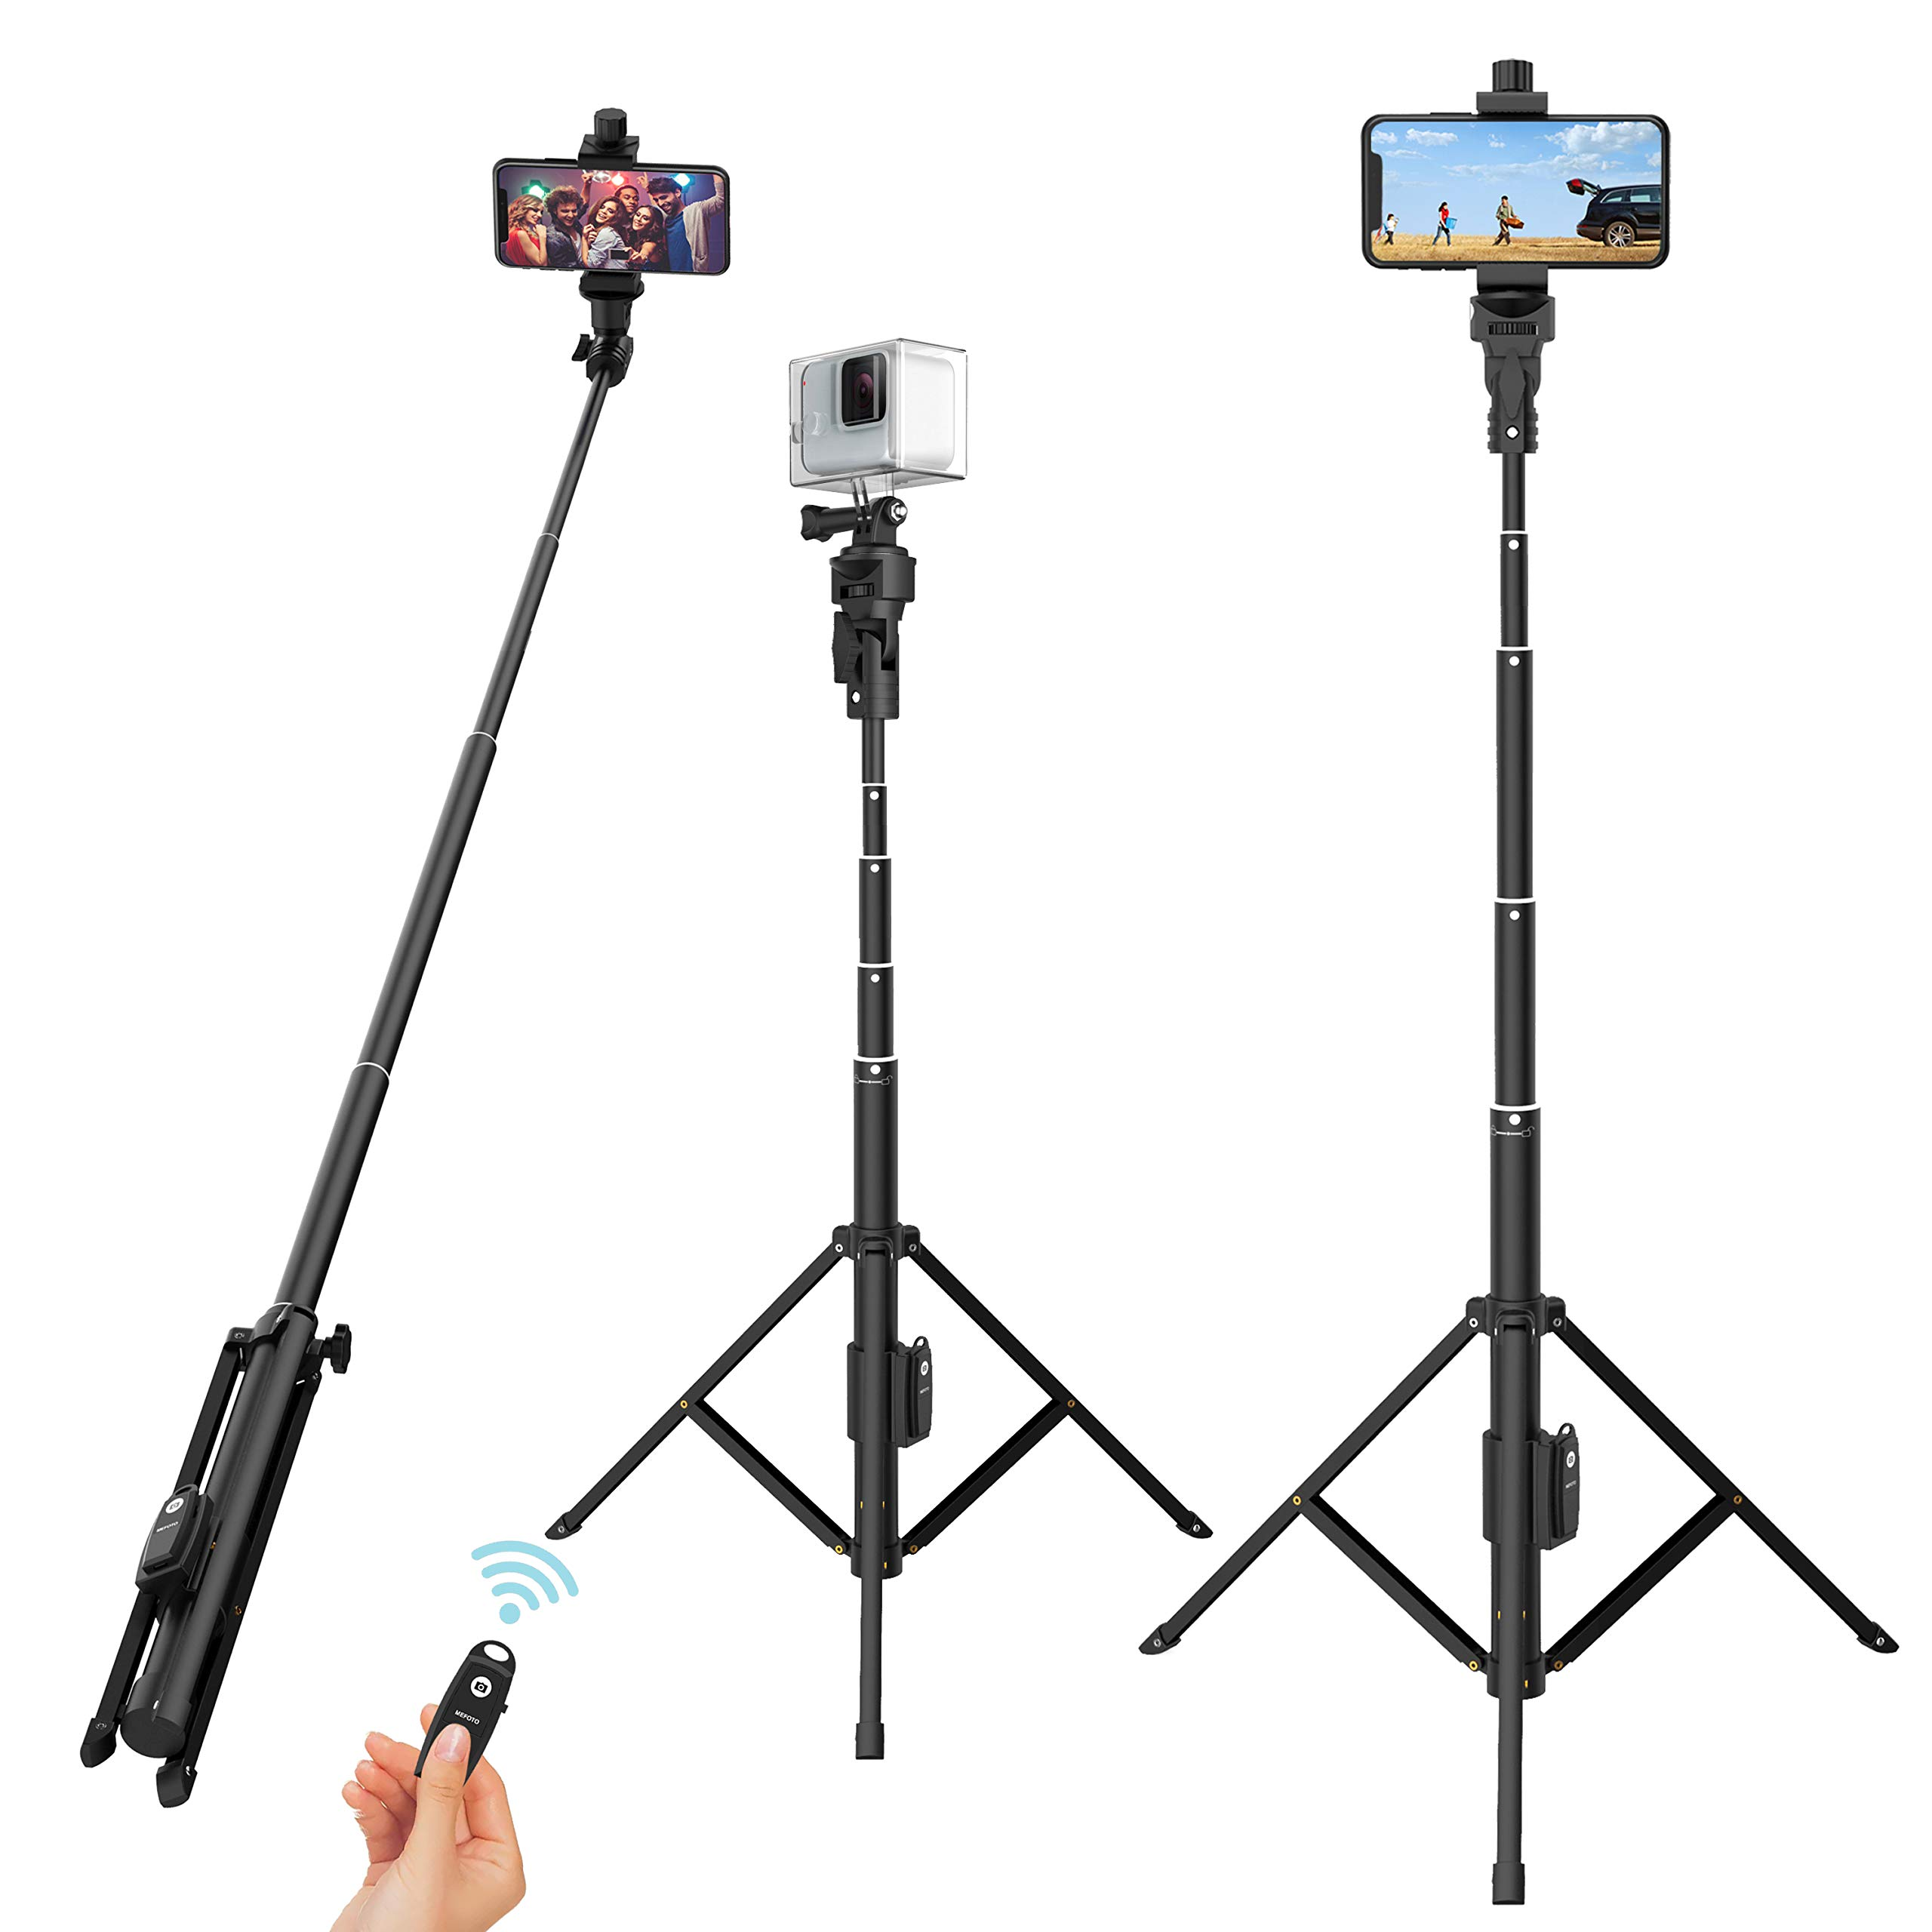 Selfie Stick Tripod, 52'' Extendable Phone Camera Selfie Stick with Tripod Stand & Rechargeable Wireless Remote for iPhone Xs X 6 7 8/ Huawei/Samsung Galaxy S9 Note8/ Xiaomi/GoPro/Android Phones by Outsolidep